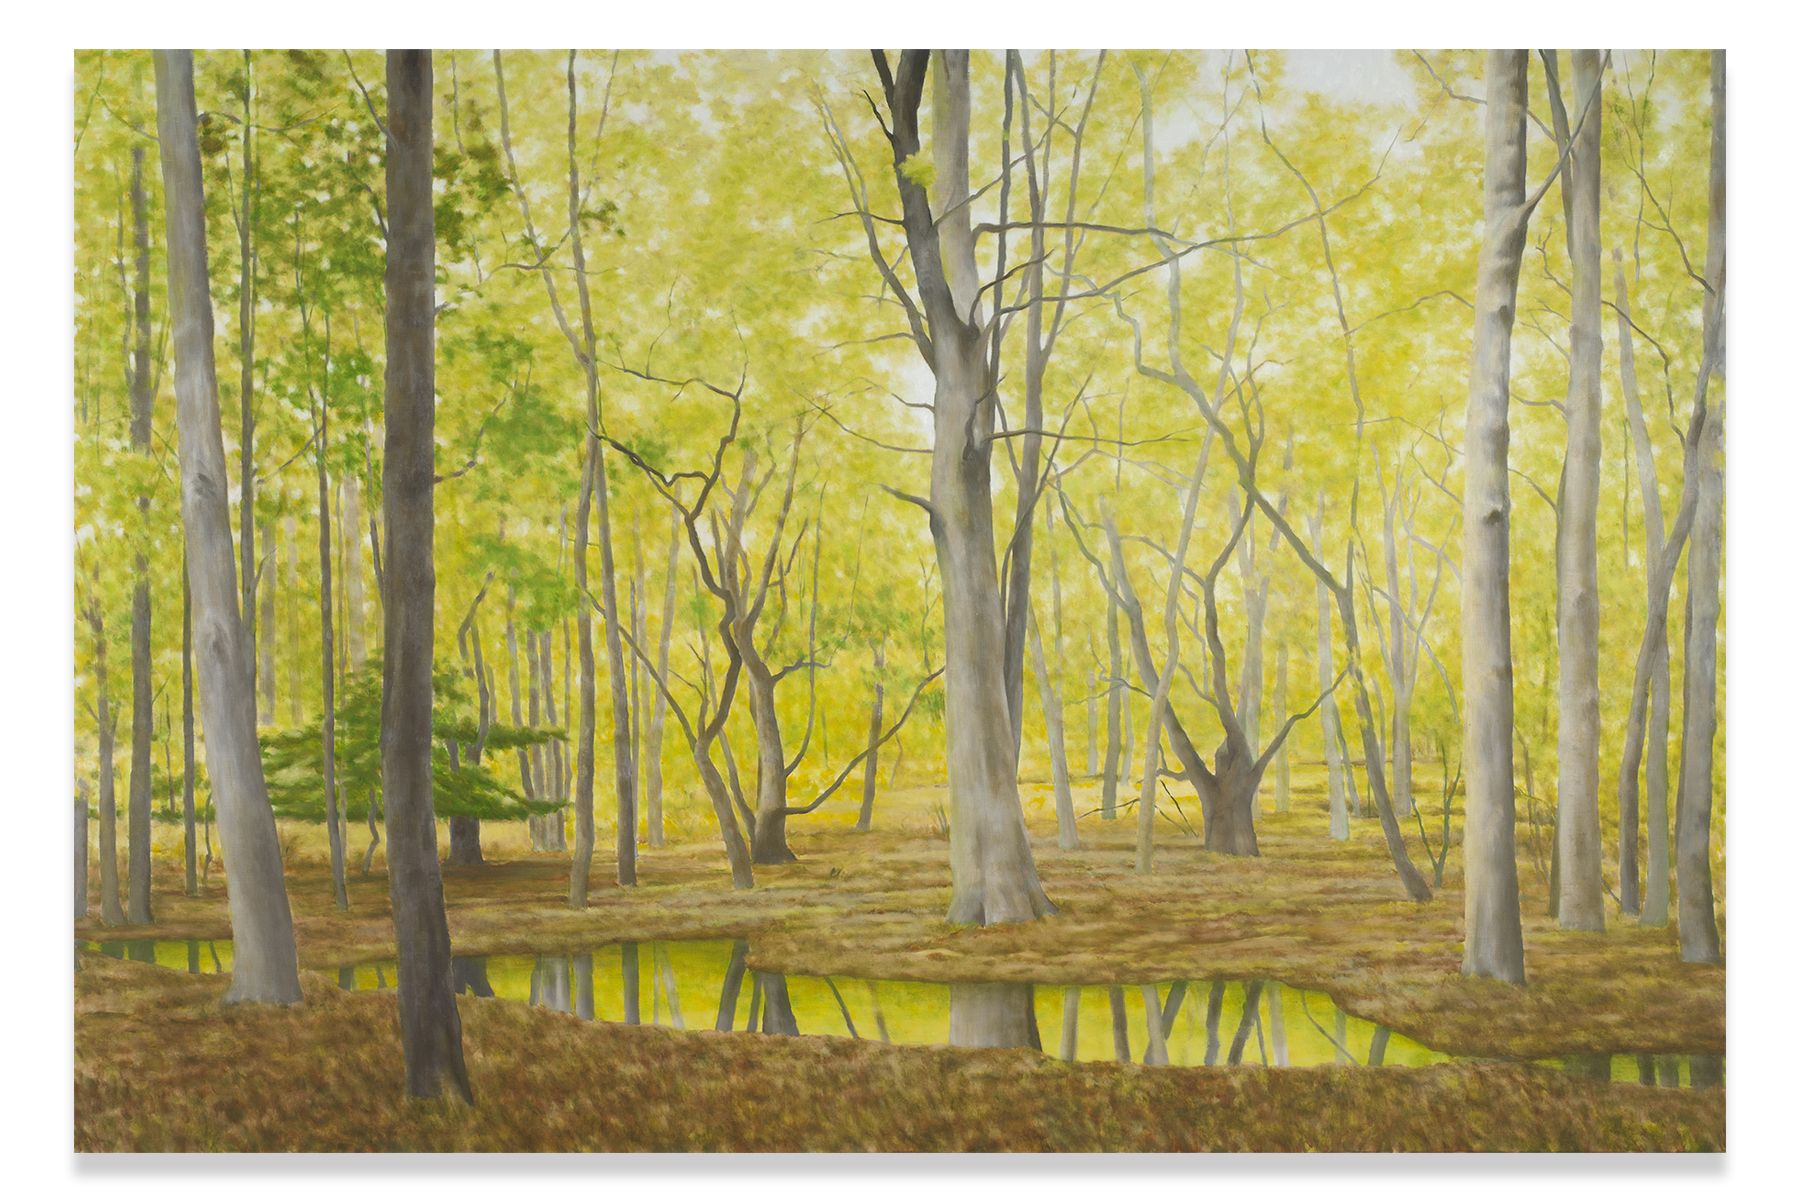 Spring Light and Still Water, 2016, Oil on linen, 72 x 108 inches, 182.9 x 274.3 cm, MMG#30407